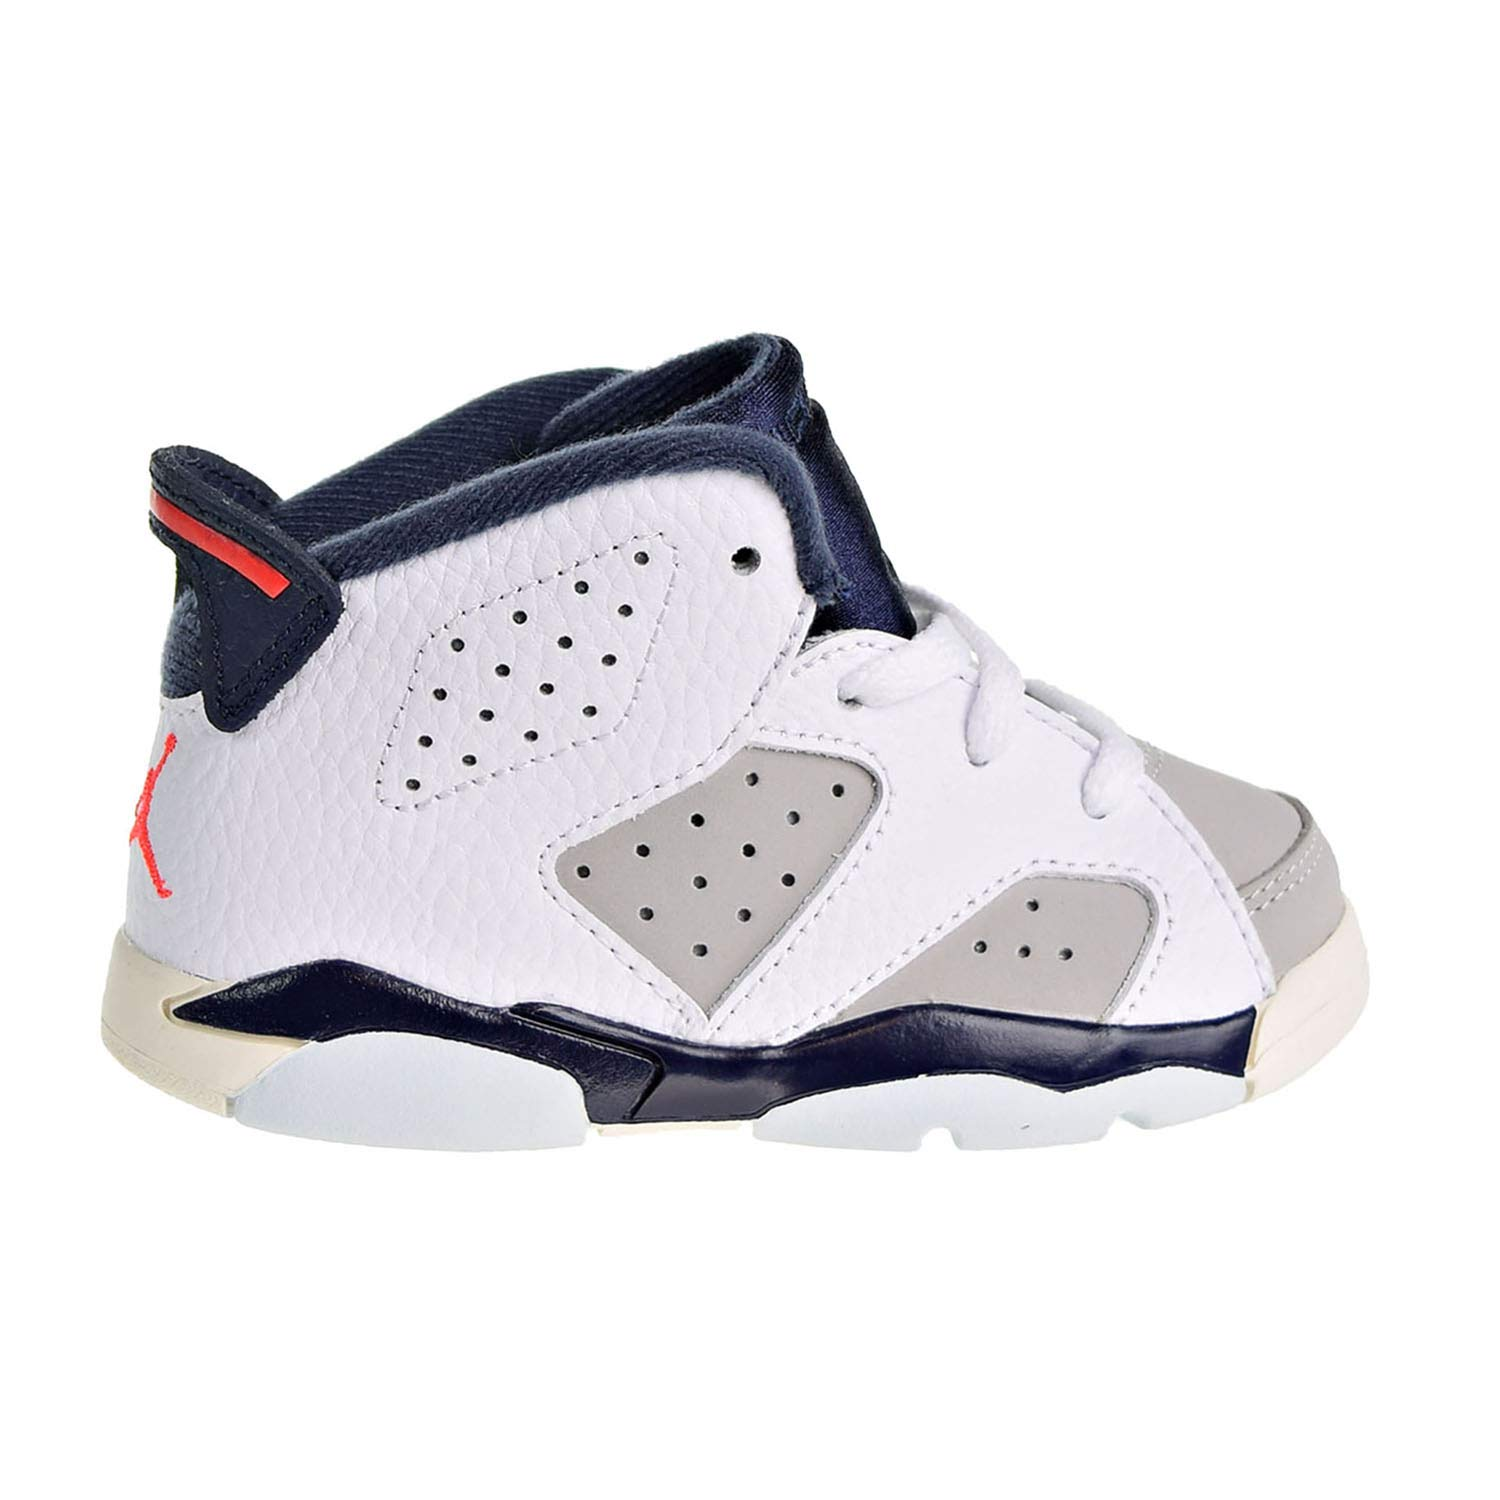 Nike Toddler Jordan 6 Retro Tinker WhiteInfrared 23 Neutral Grey